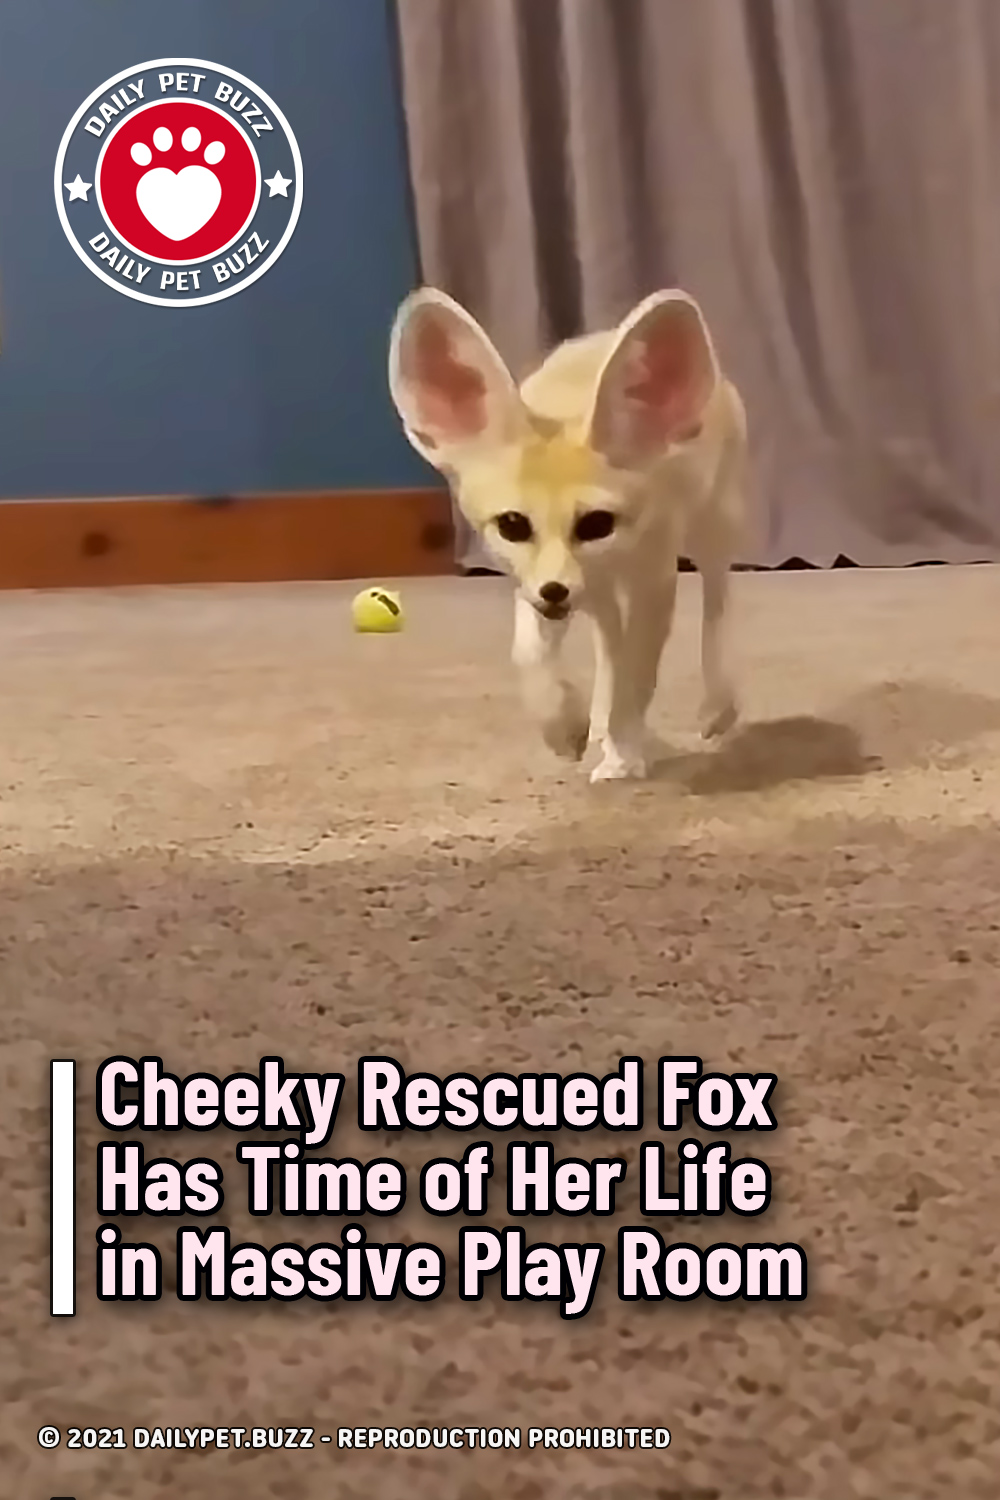 Cheeky Rescued Fox Has Time of Her Life in Massive Play Room